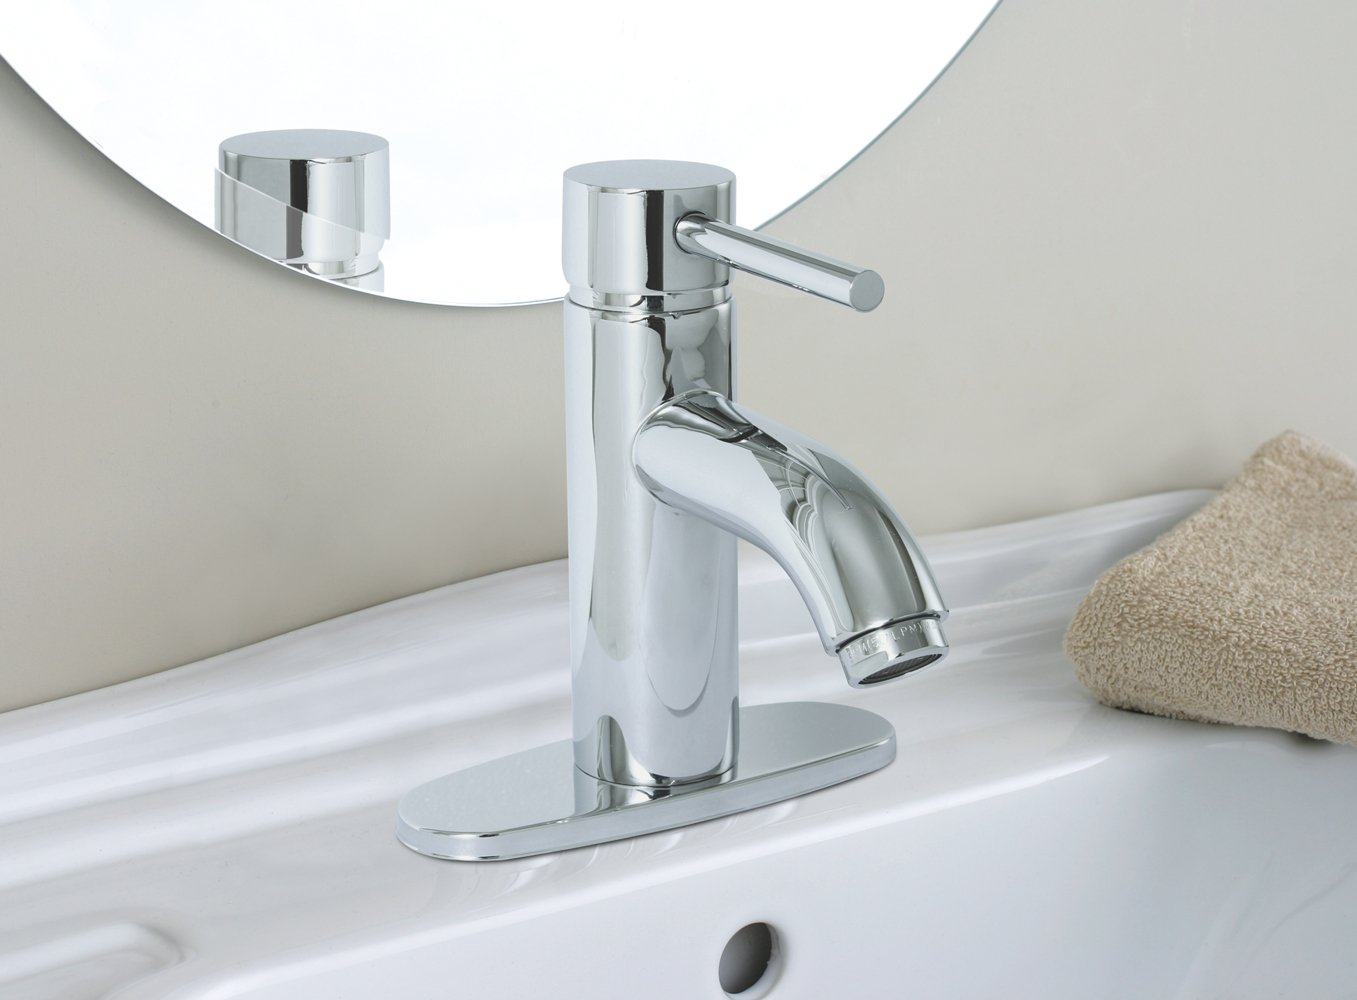 Premier 120125 Essen Single-Handle Lavatory Faucet, Chrome - Touch ...